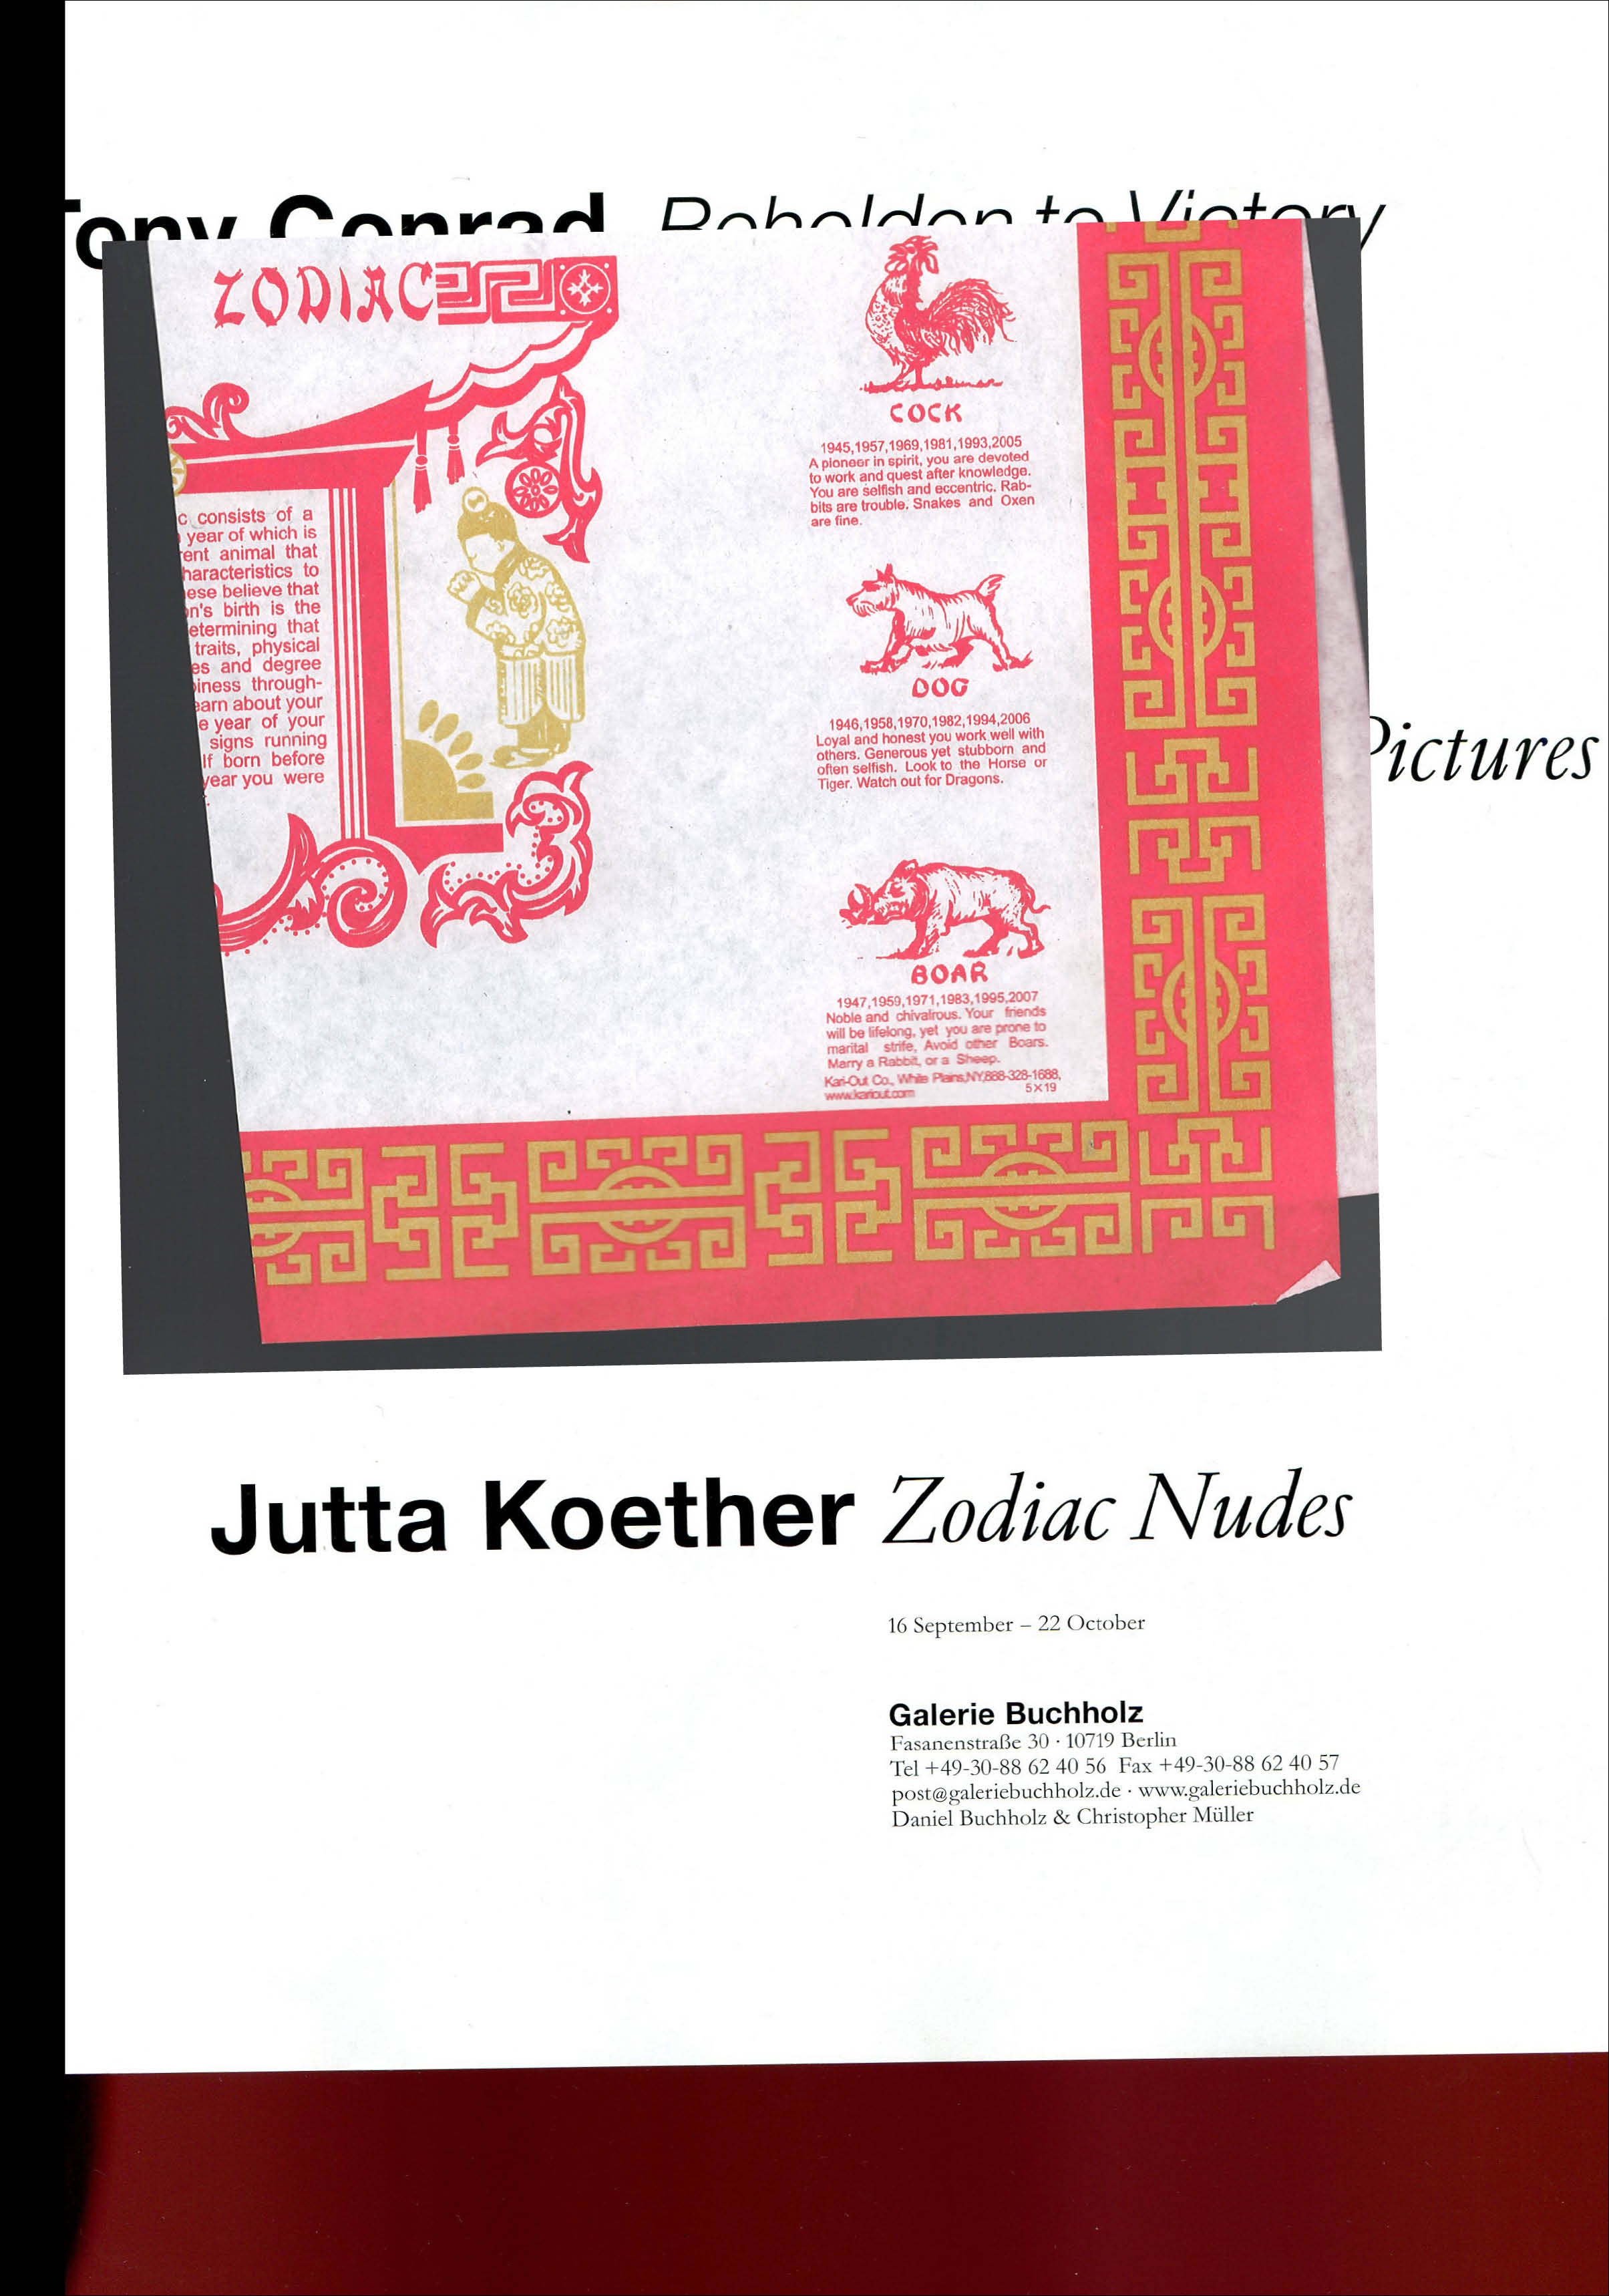 "Jutta Koether – ""Zodiac Nudes"" 2016, 212 pages, xeroxed artist book 28,3 x 20,2 cm Edition of 50 signed & numbered out of print – Xeroxed artist book published on the occasion of Jutta Koether's exhibition ""Zodiac Nudes"" at our Berlin gallery in September 2016."